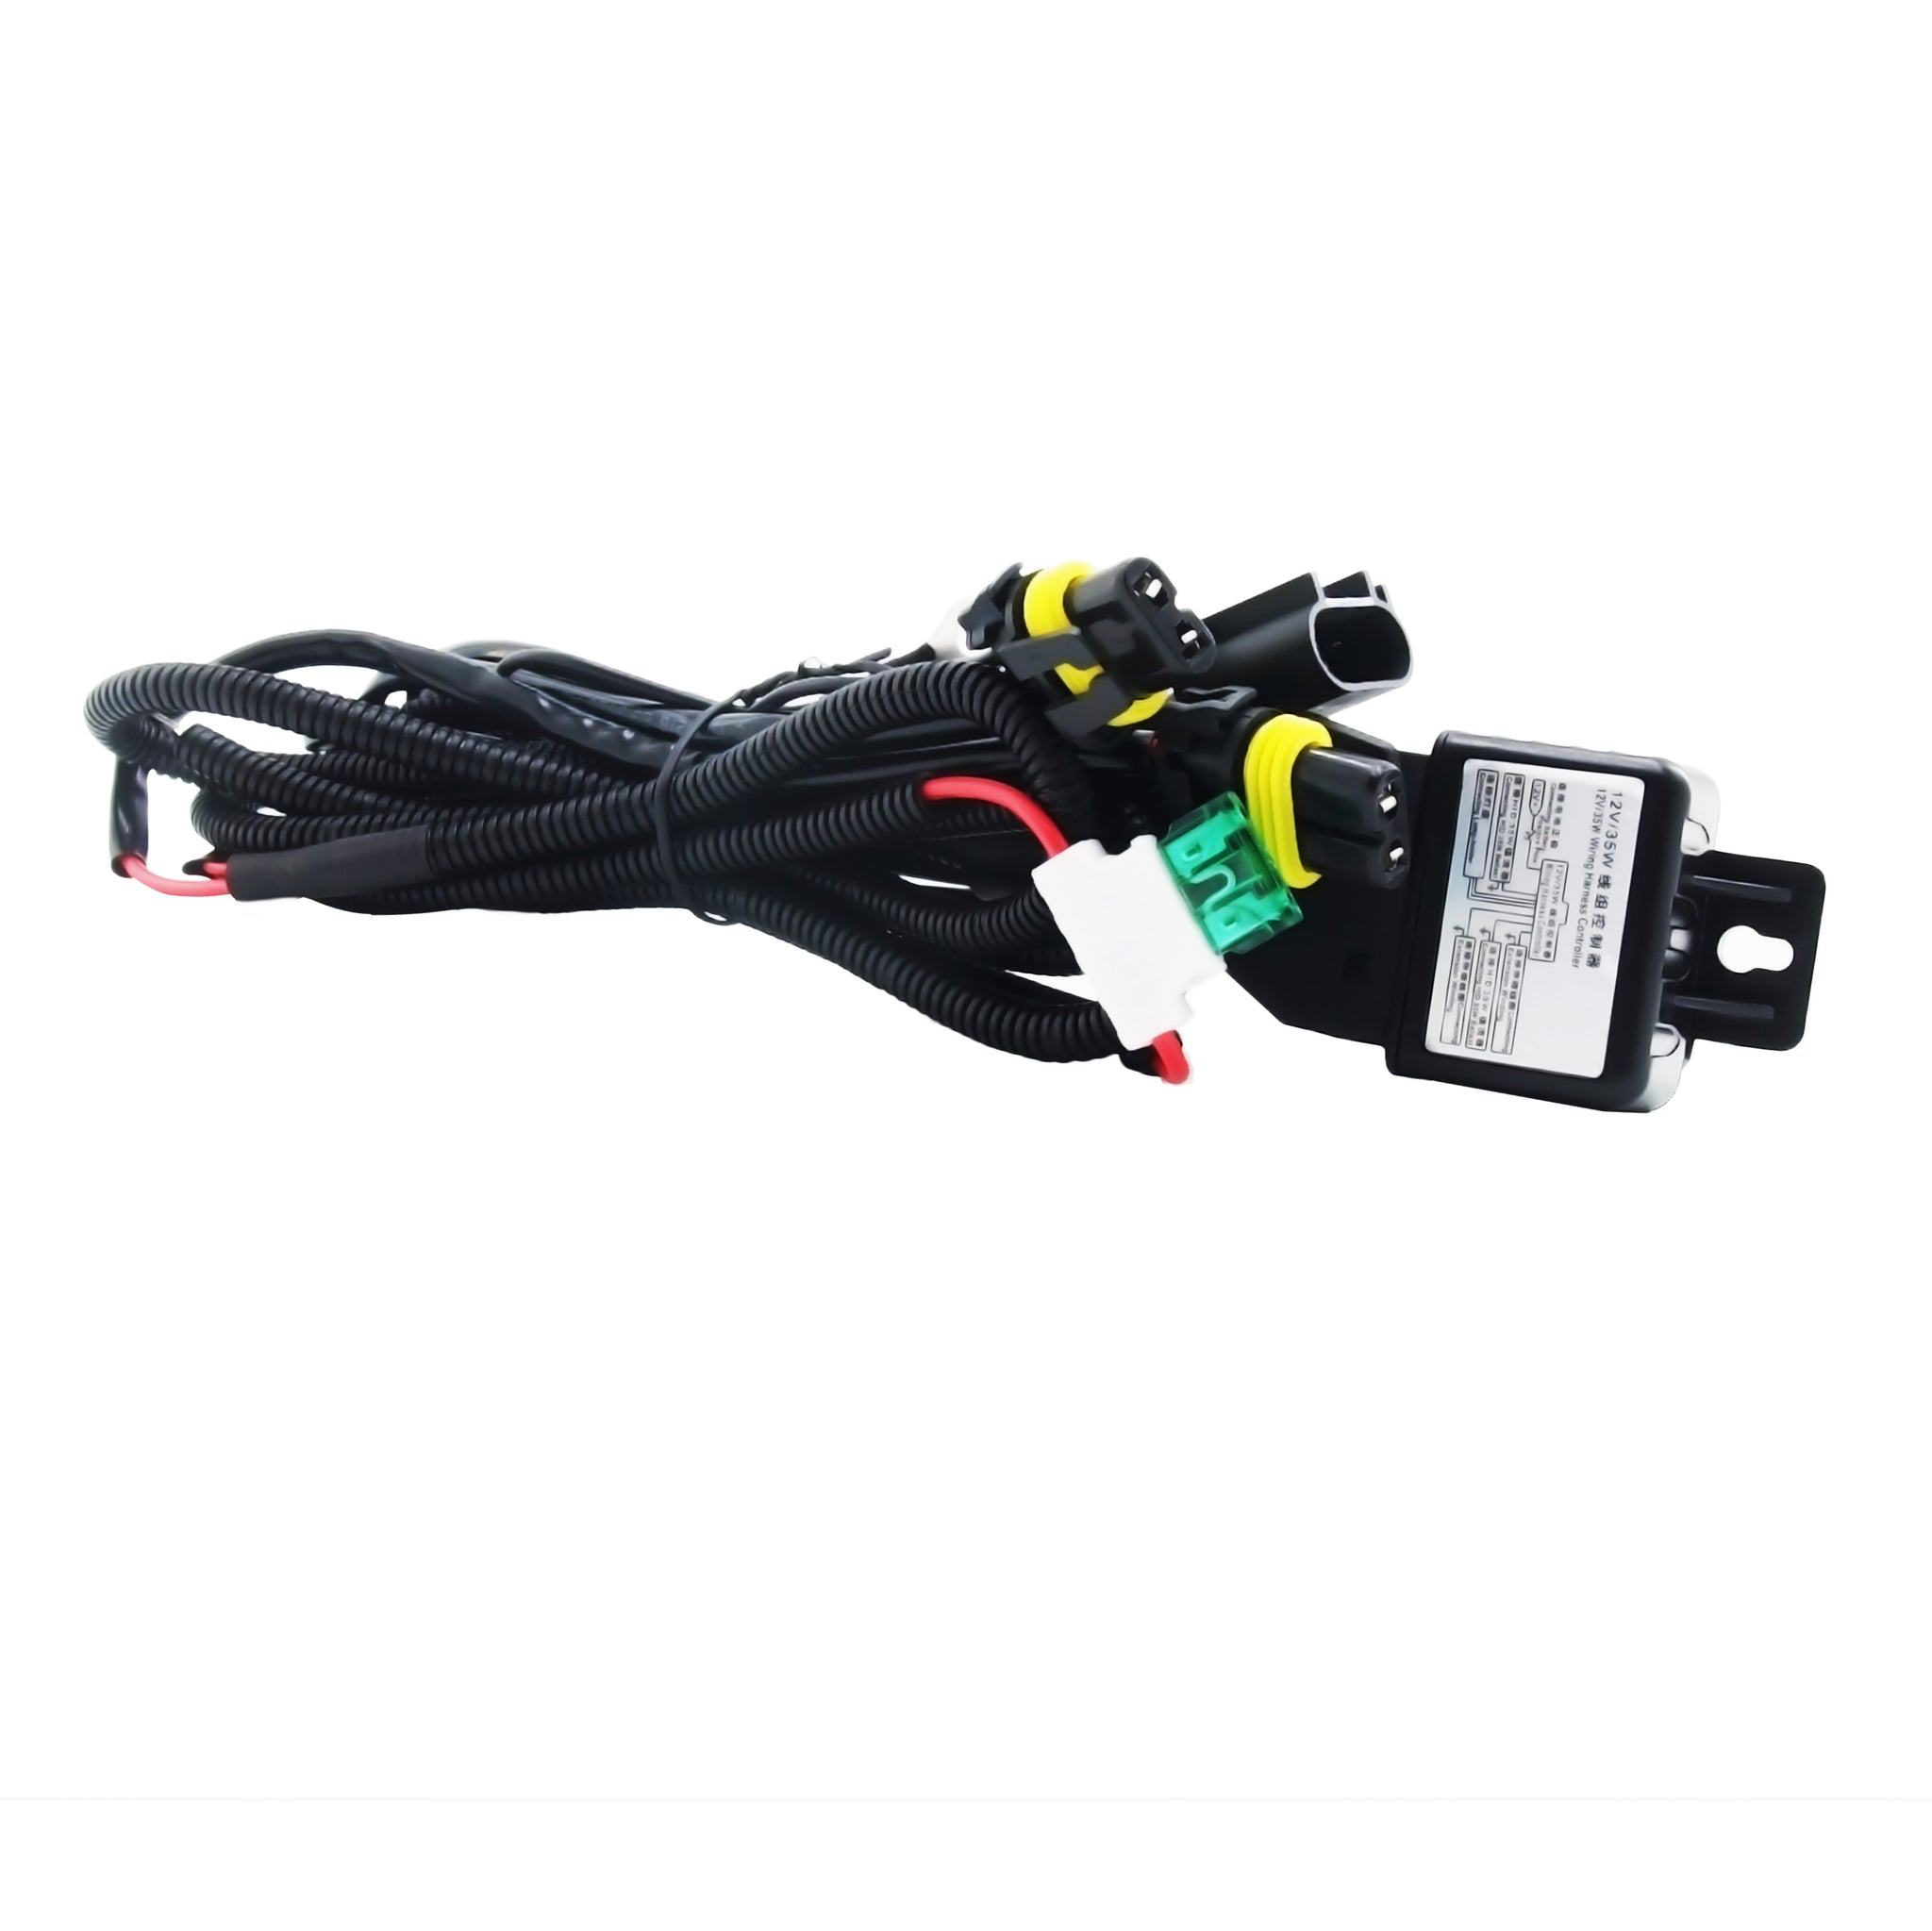 H13 / 9008 HID Xenon Kit Bi-Xenon Relay Wiring Harness Cable